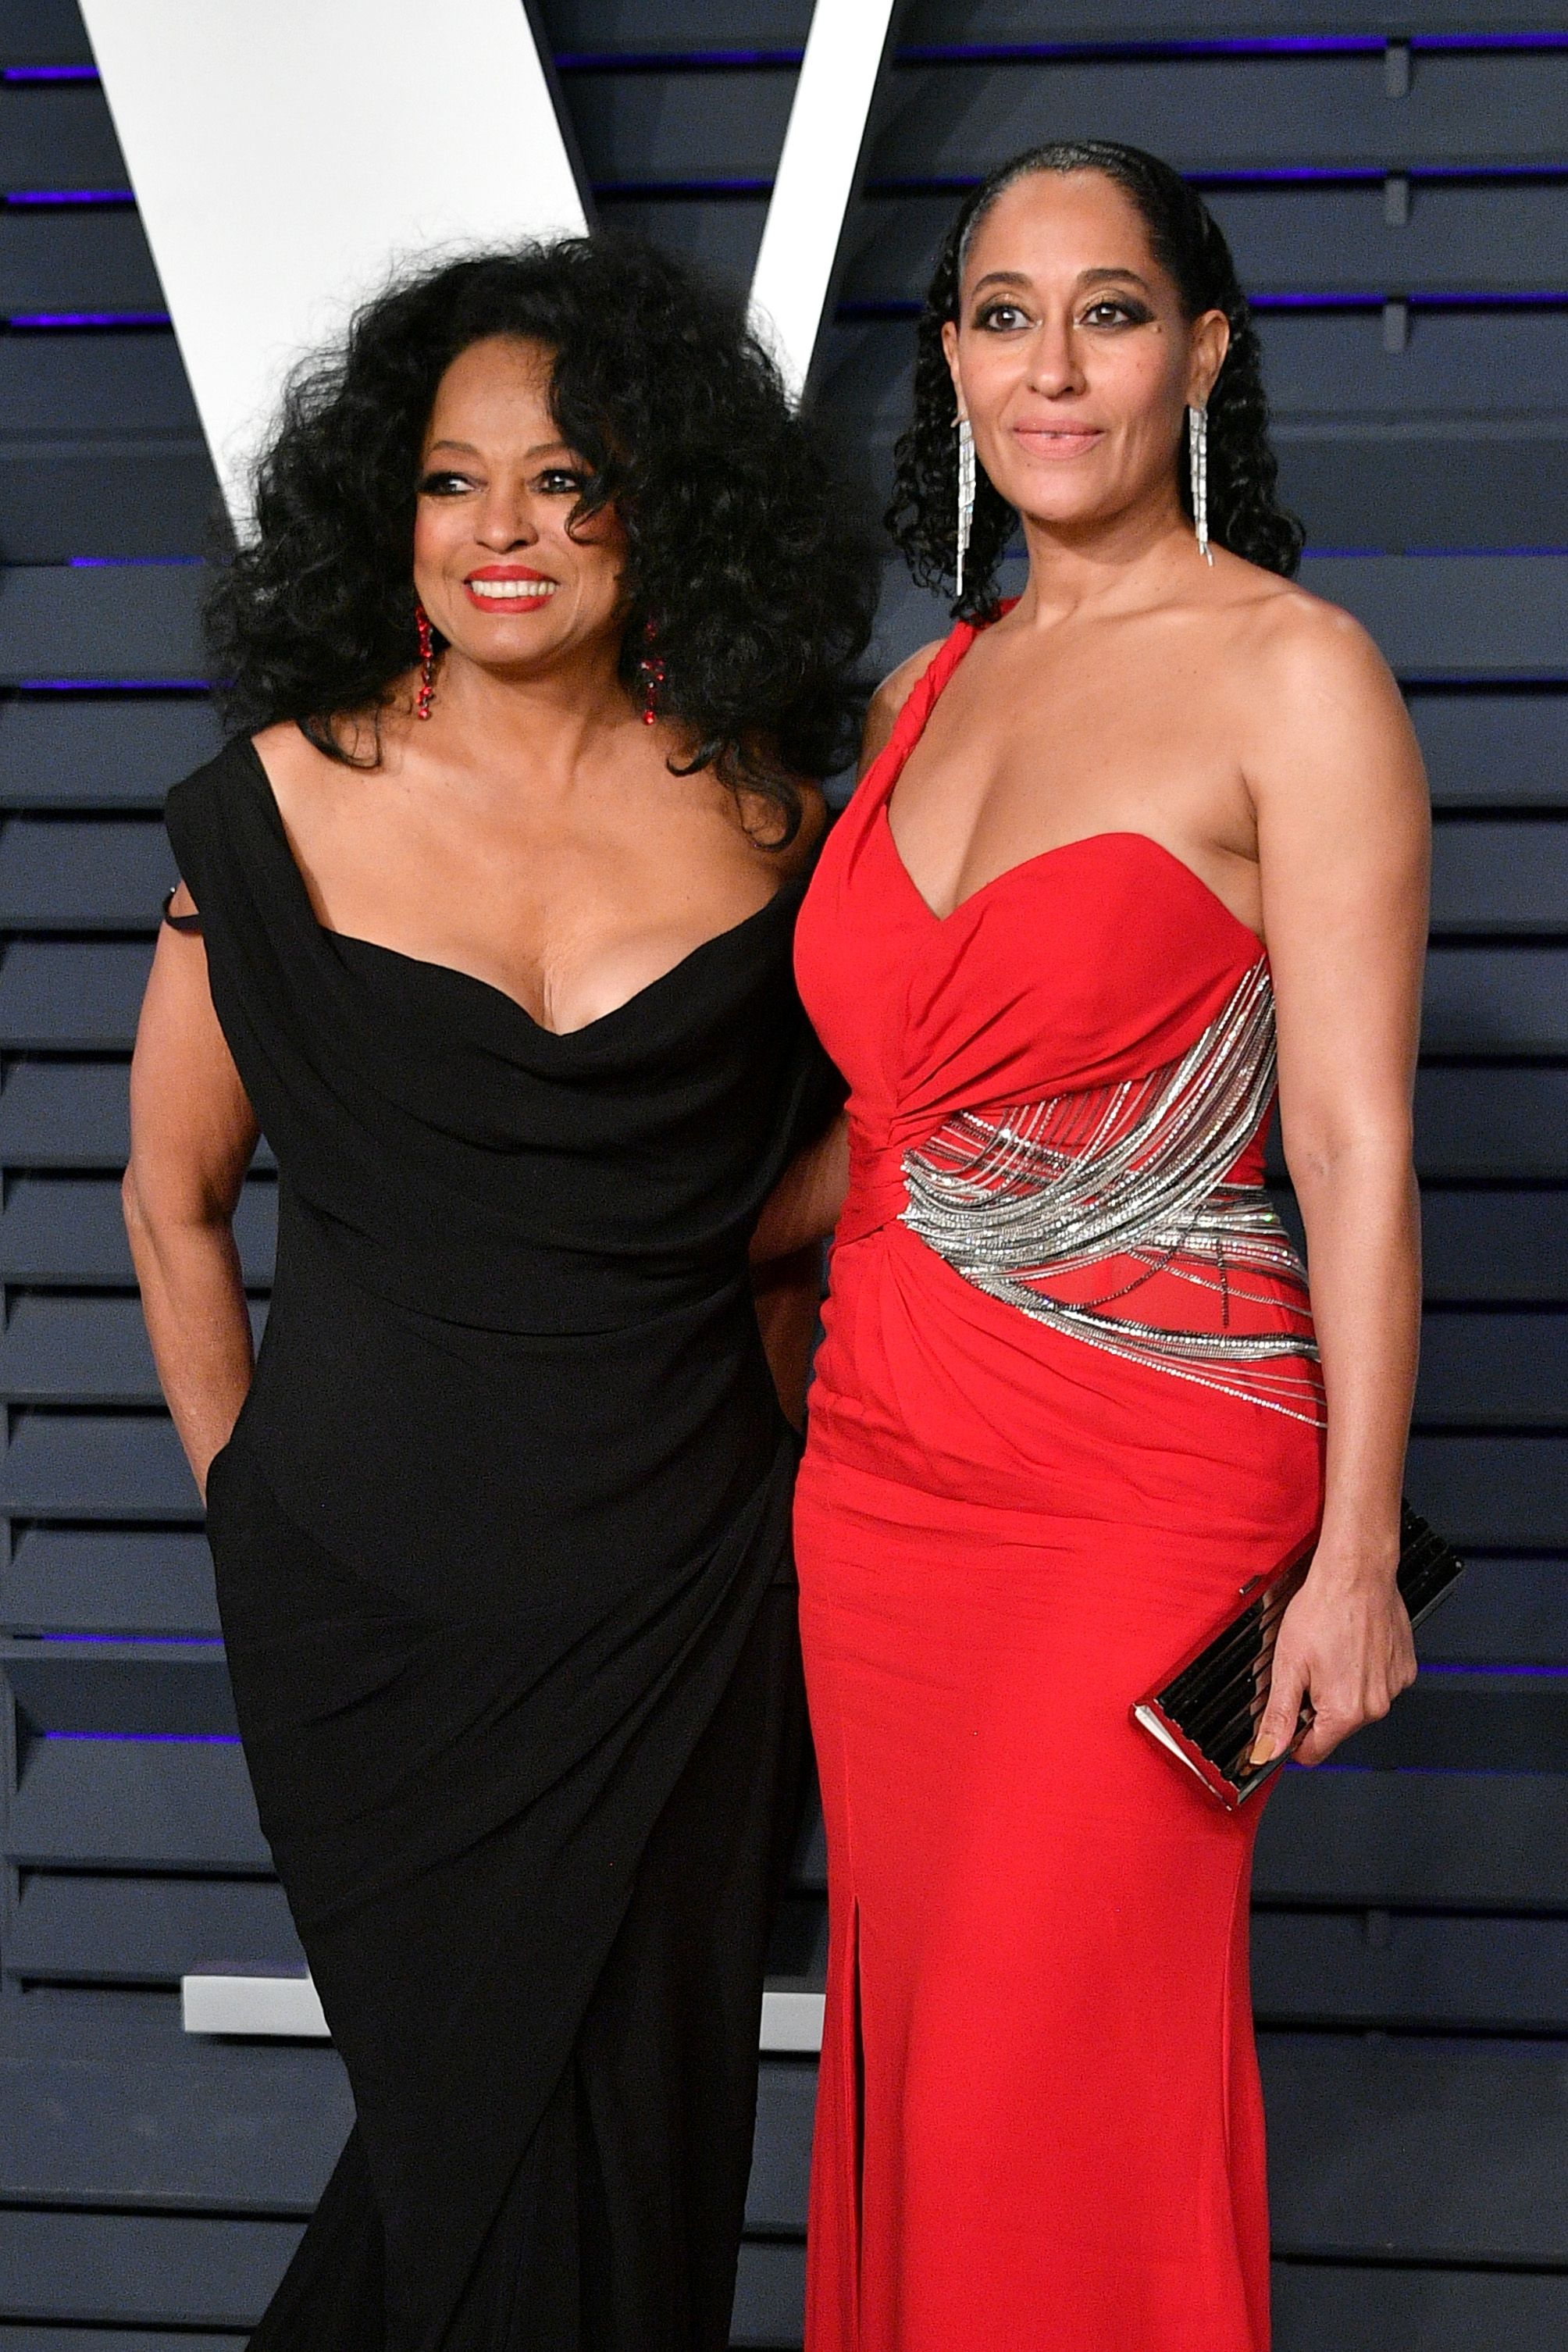 Diana Ross & Tracee Ellis Ross at the Vanity Fair Oscar Party on February 24, 2019 in California   Photo: Getty Images